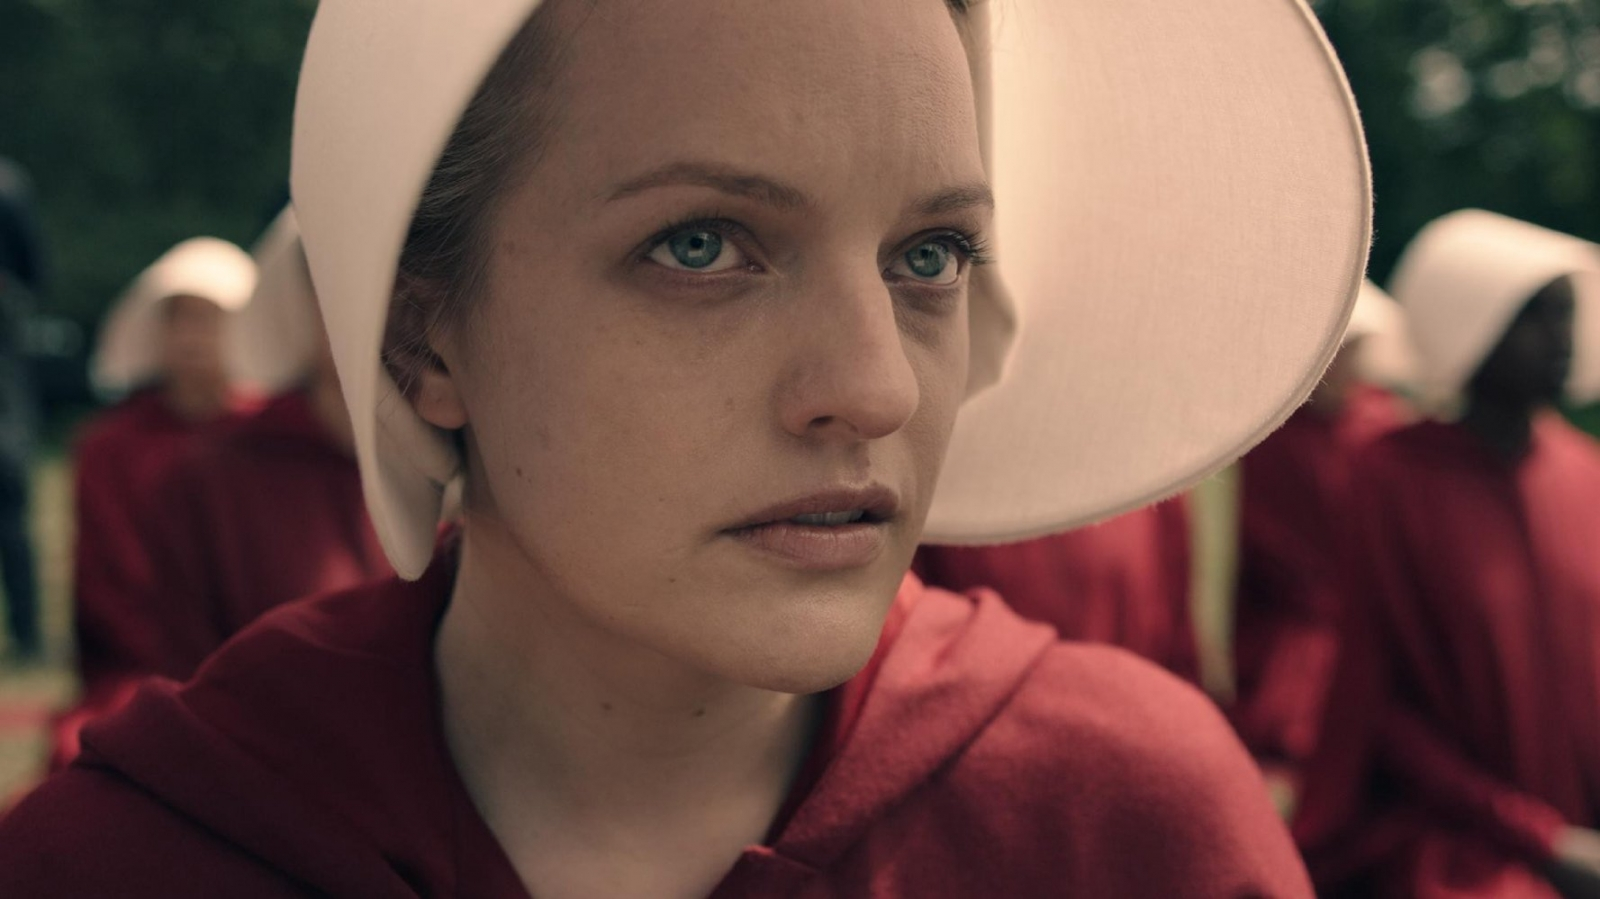 Channel 4 acquires The Handmaid's Tale for United Kingdom broadcast